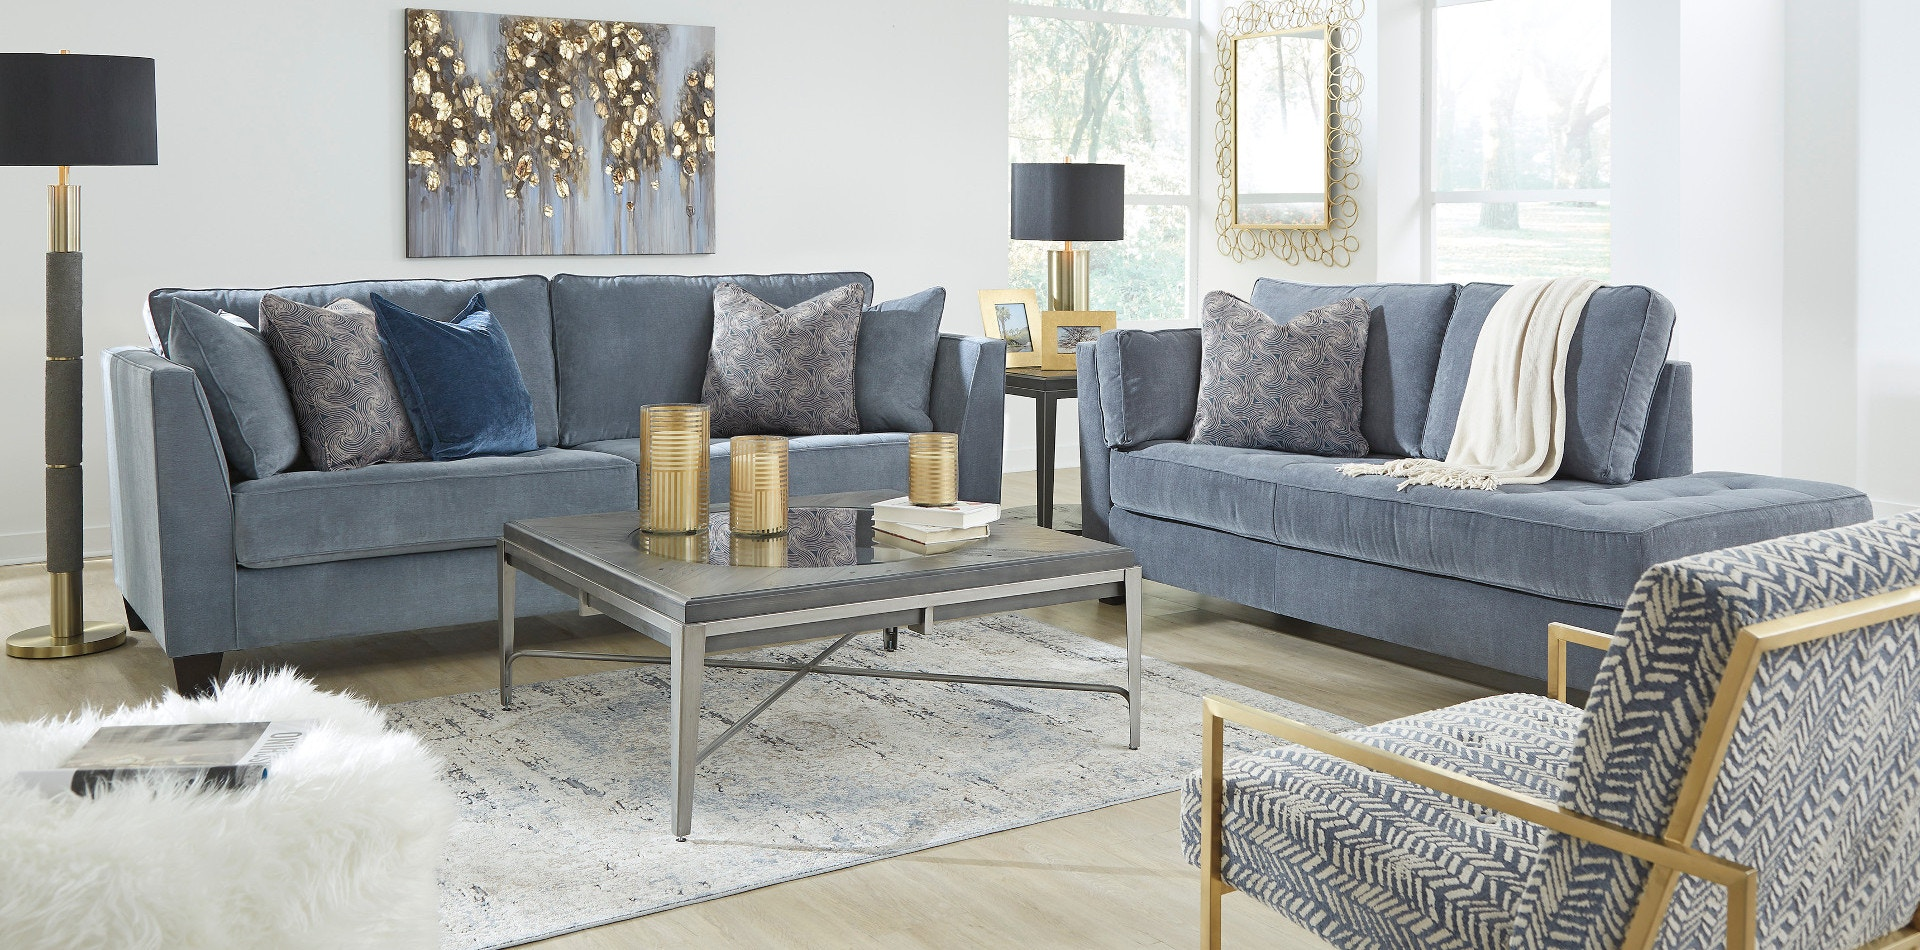 Lindsey S Furniture Northwest Florida S Best Bargains On